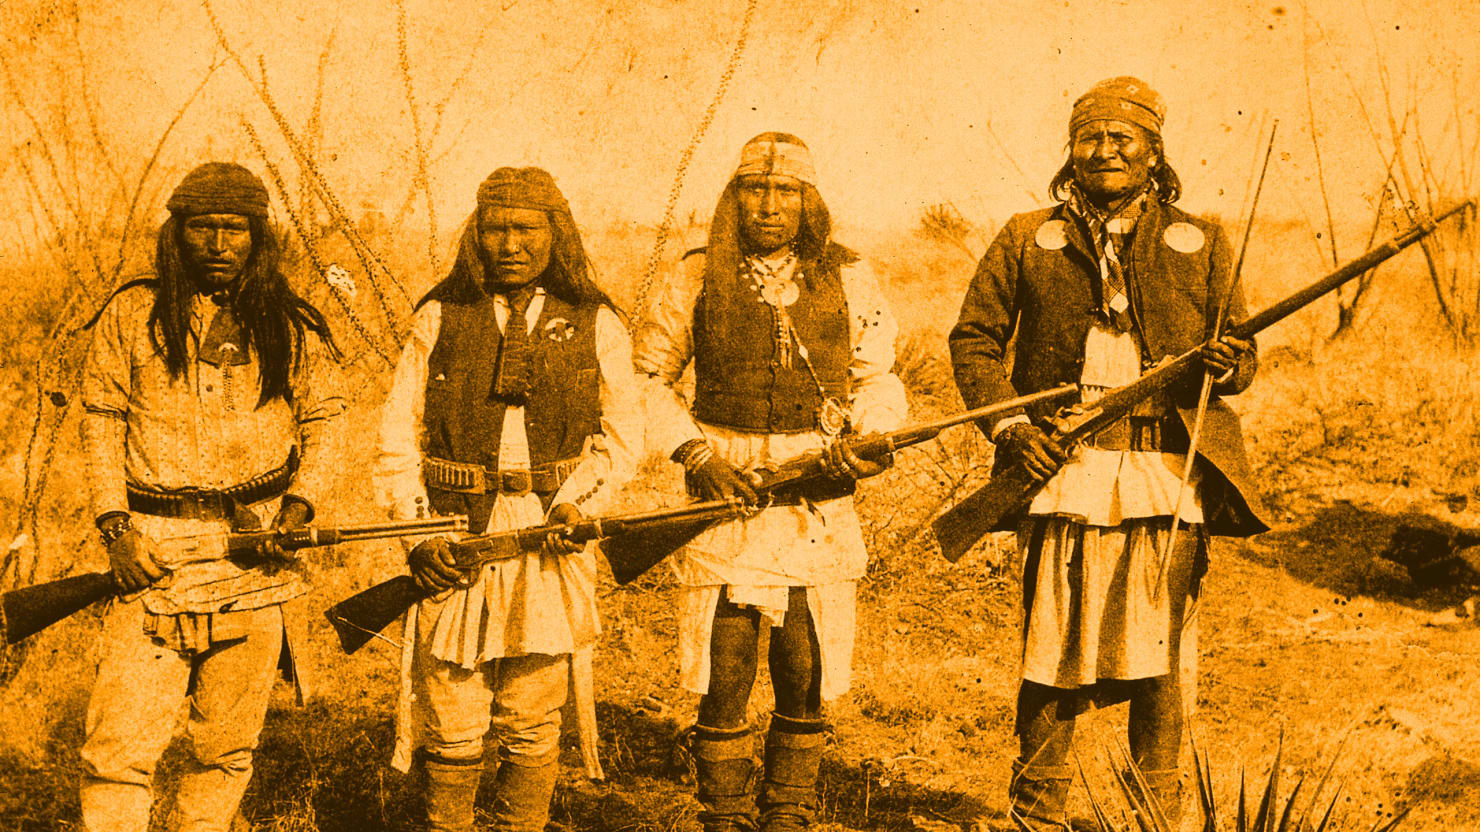 170302-warren-native-american-guns-tease_jyh4op.jpg MPI/Getty Images lutheran indian ministries native news